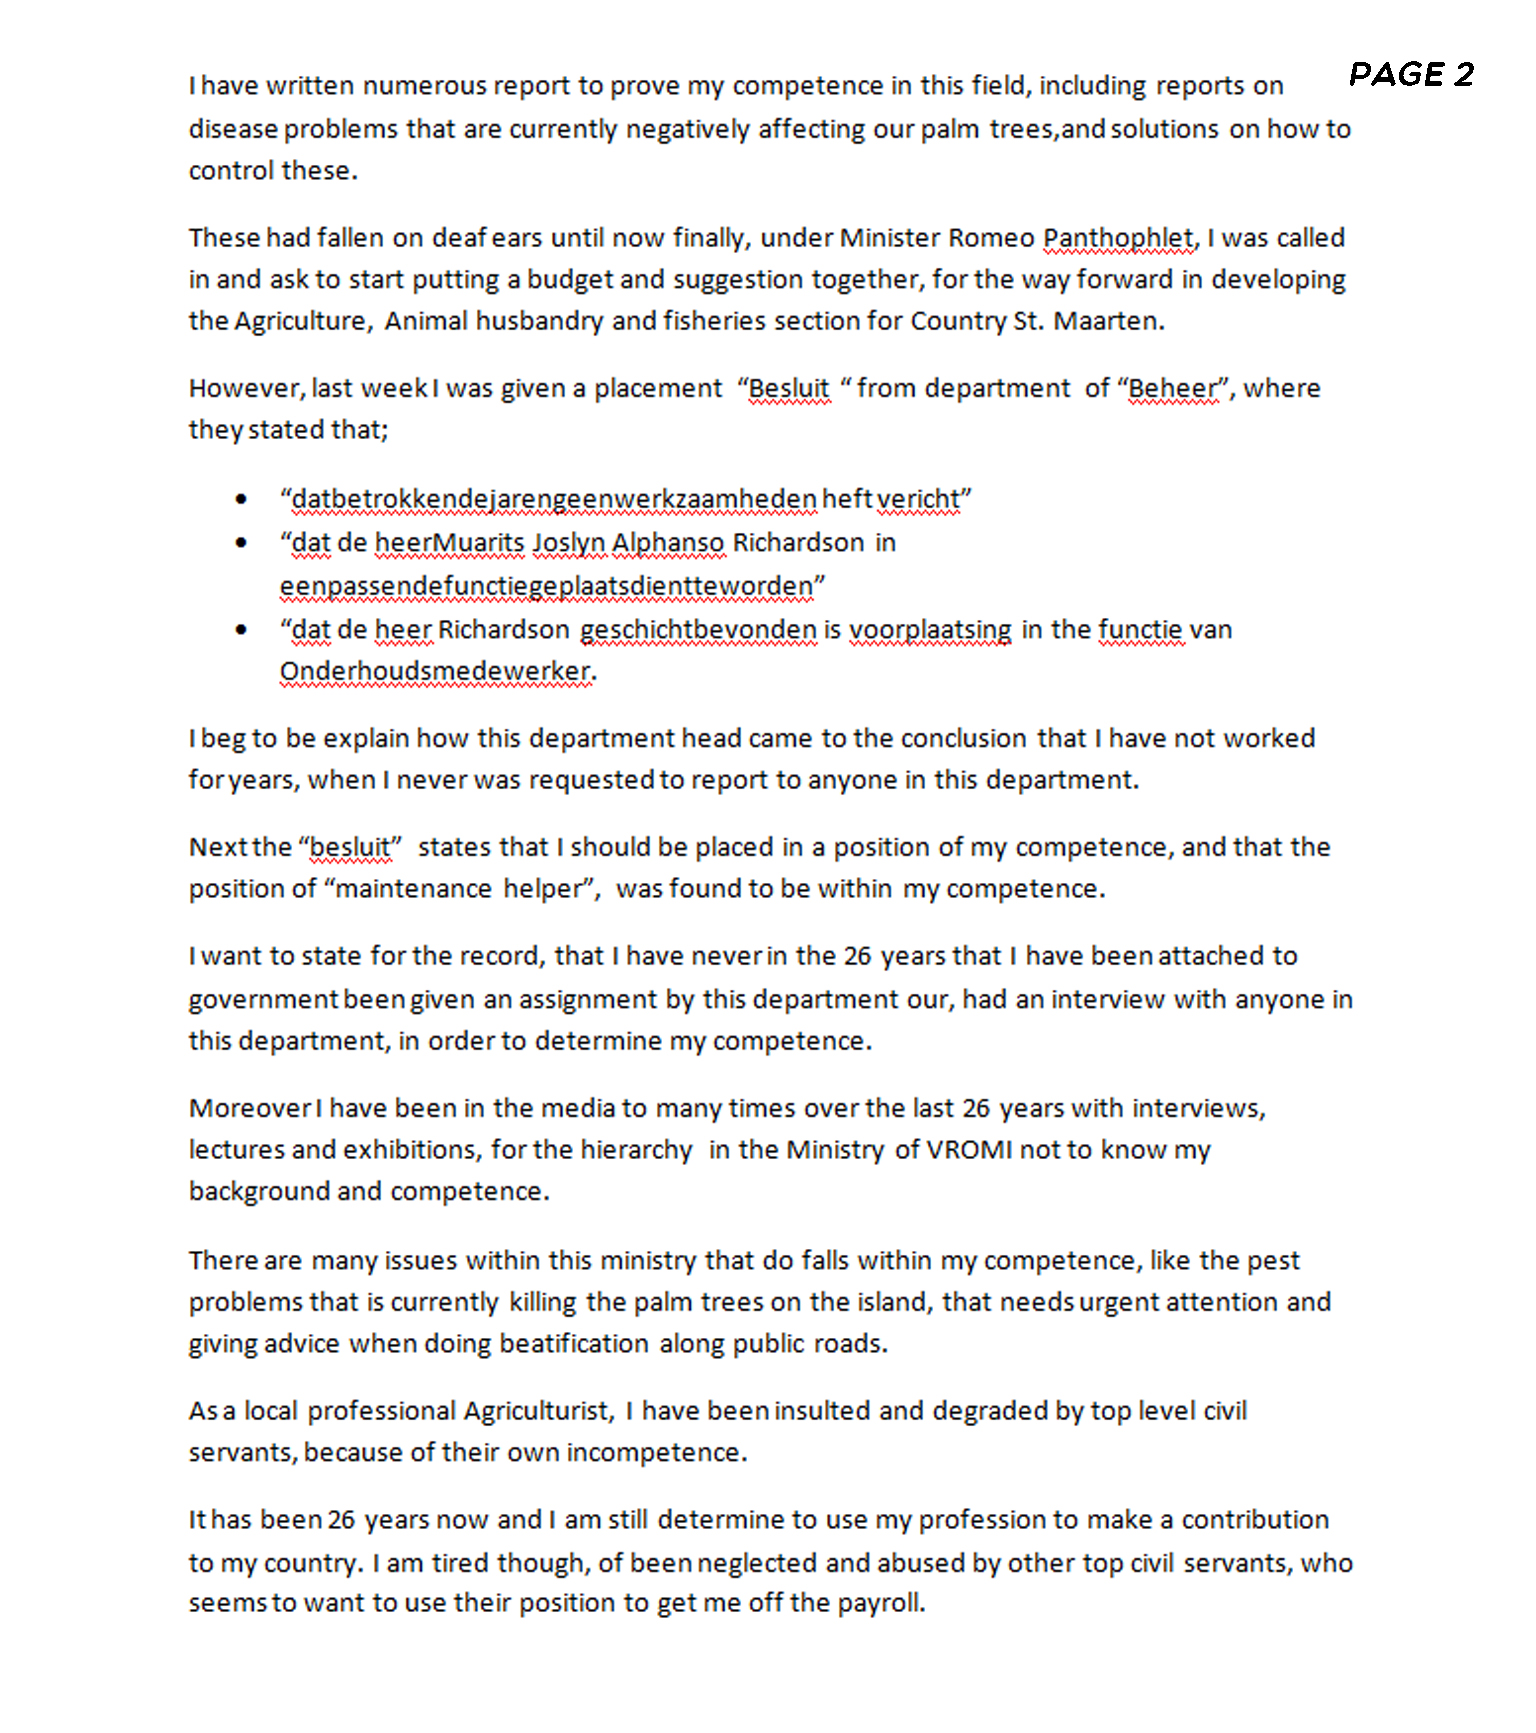 to the council of ministers page 2